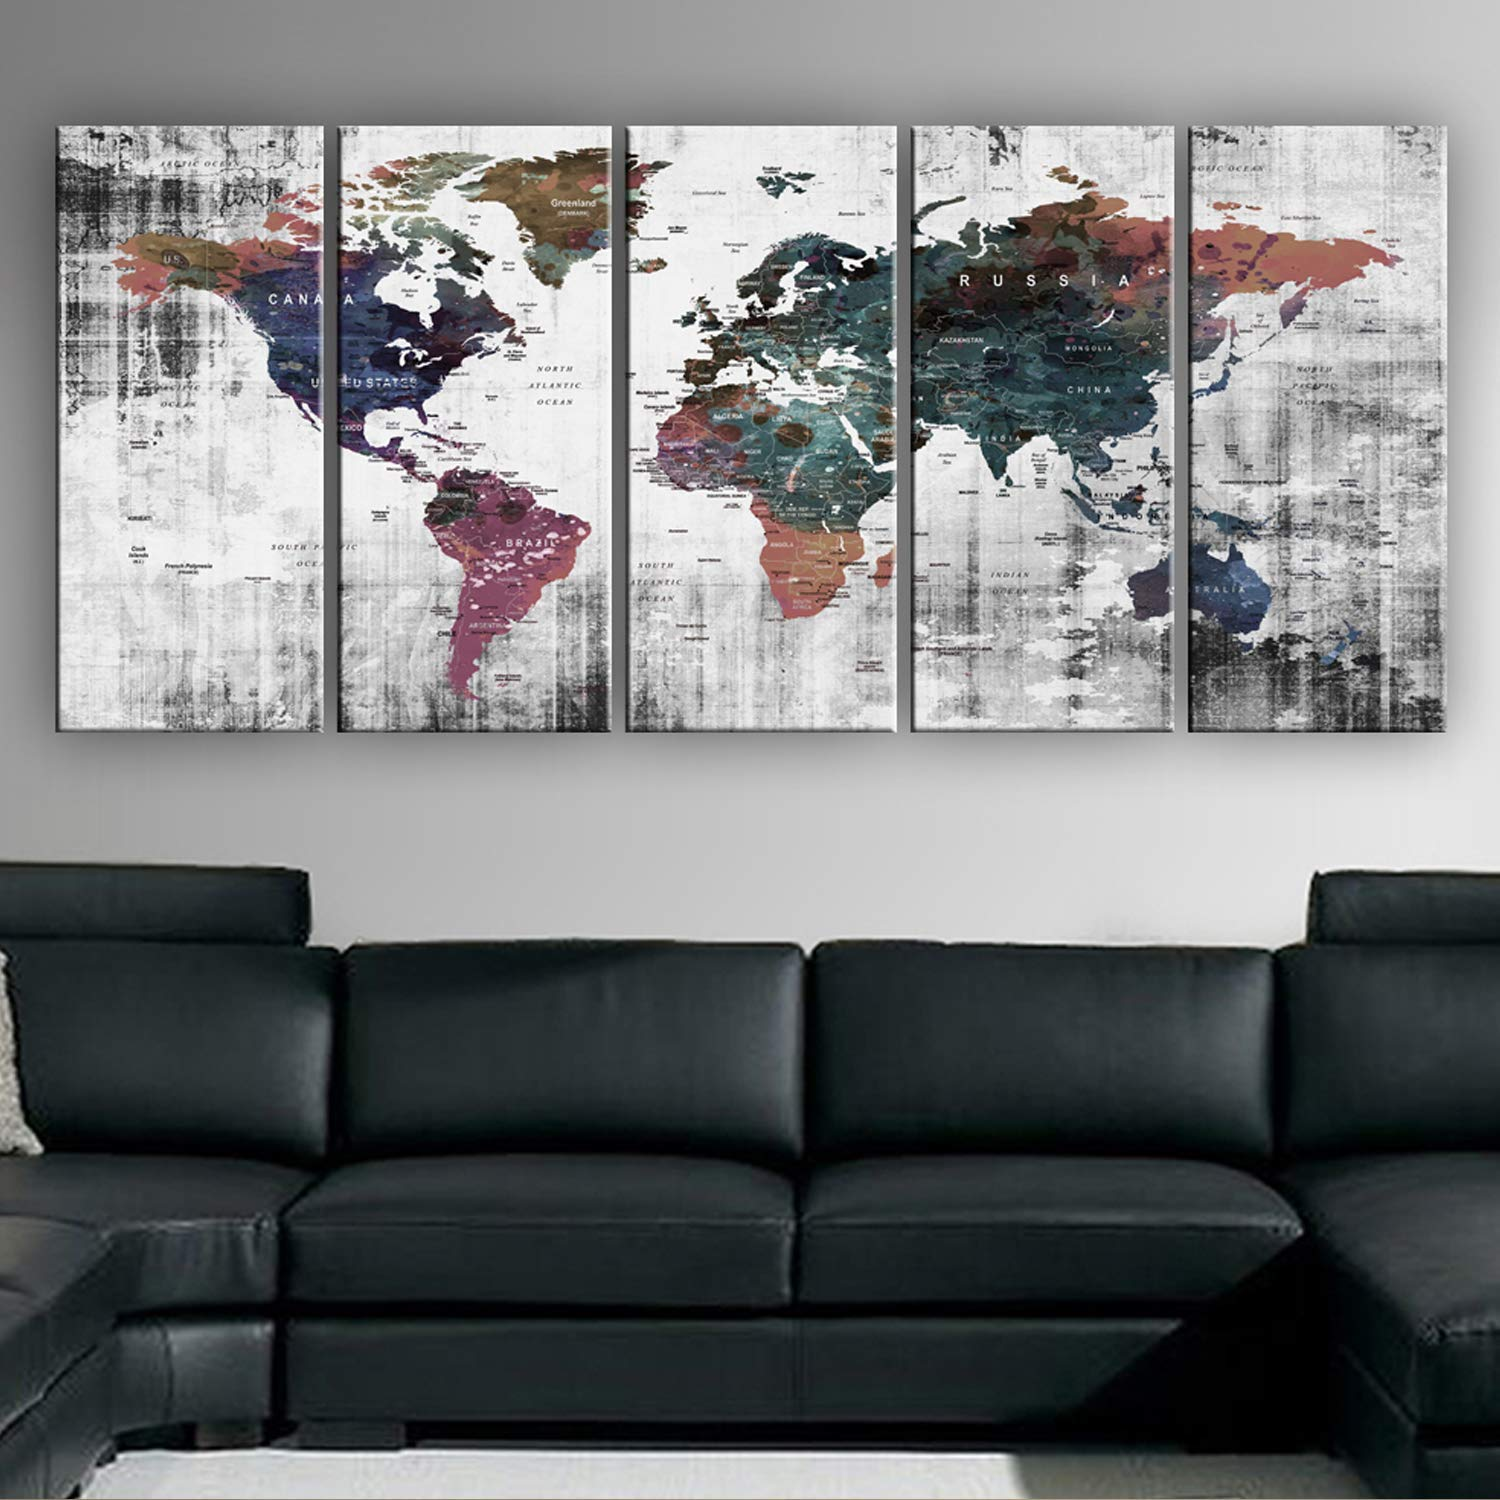 Original by BoxColors Xlarge 30''x 70'' 5 Panels 30x14 Ea Art Canvas Print Watercolor Old Map World Push Pin Travel Wall decor (framed 1.5'' depth) M1809